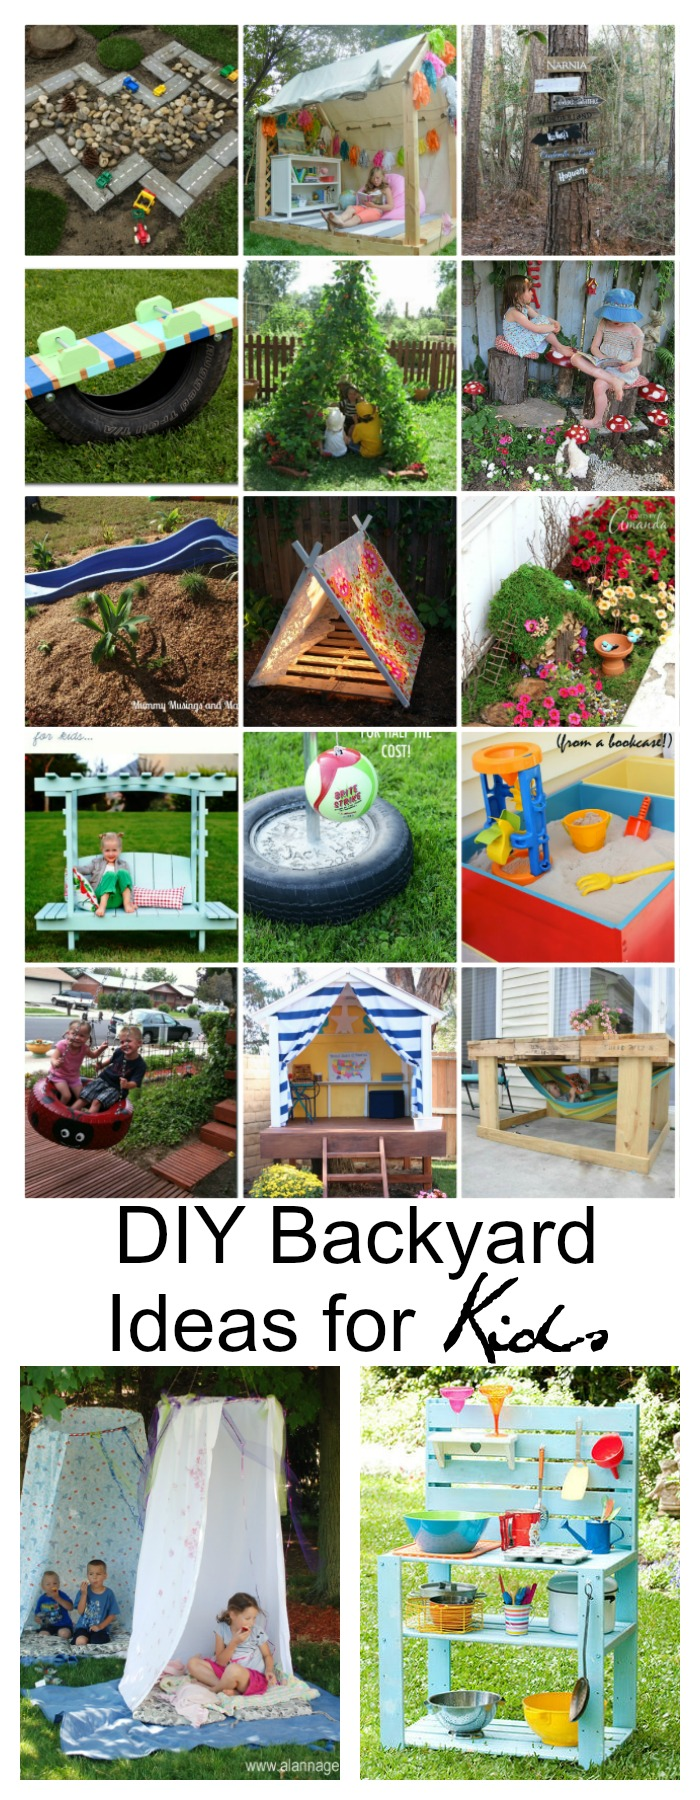 Diy Backyard Ideas For Kids The Idea Room